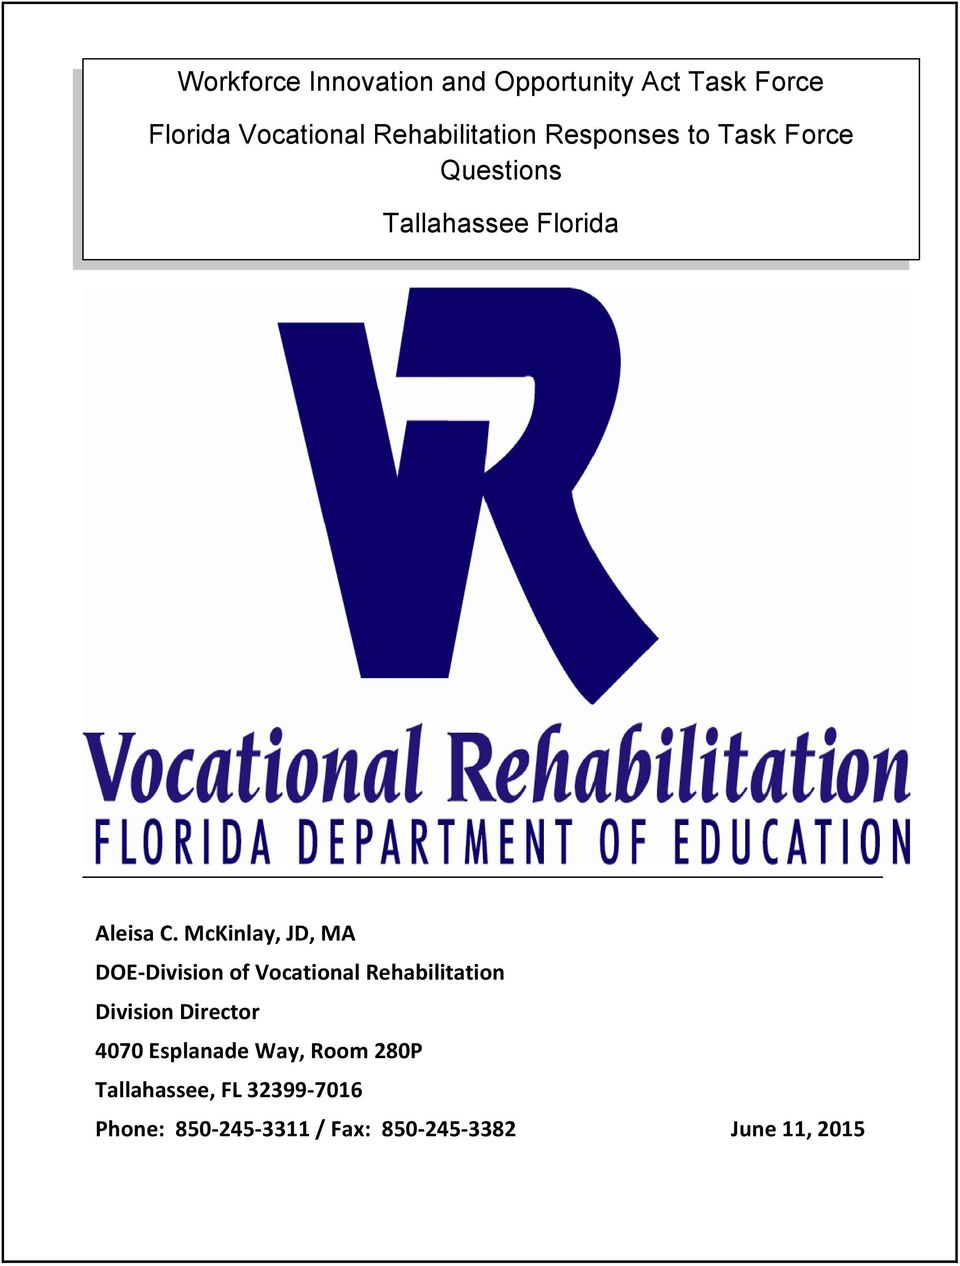 McKinlay, JD, MA DOE-Division of Vocational Rehabilitation Division Director 4070